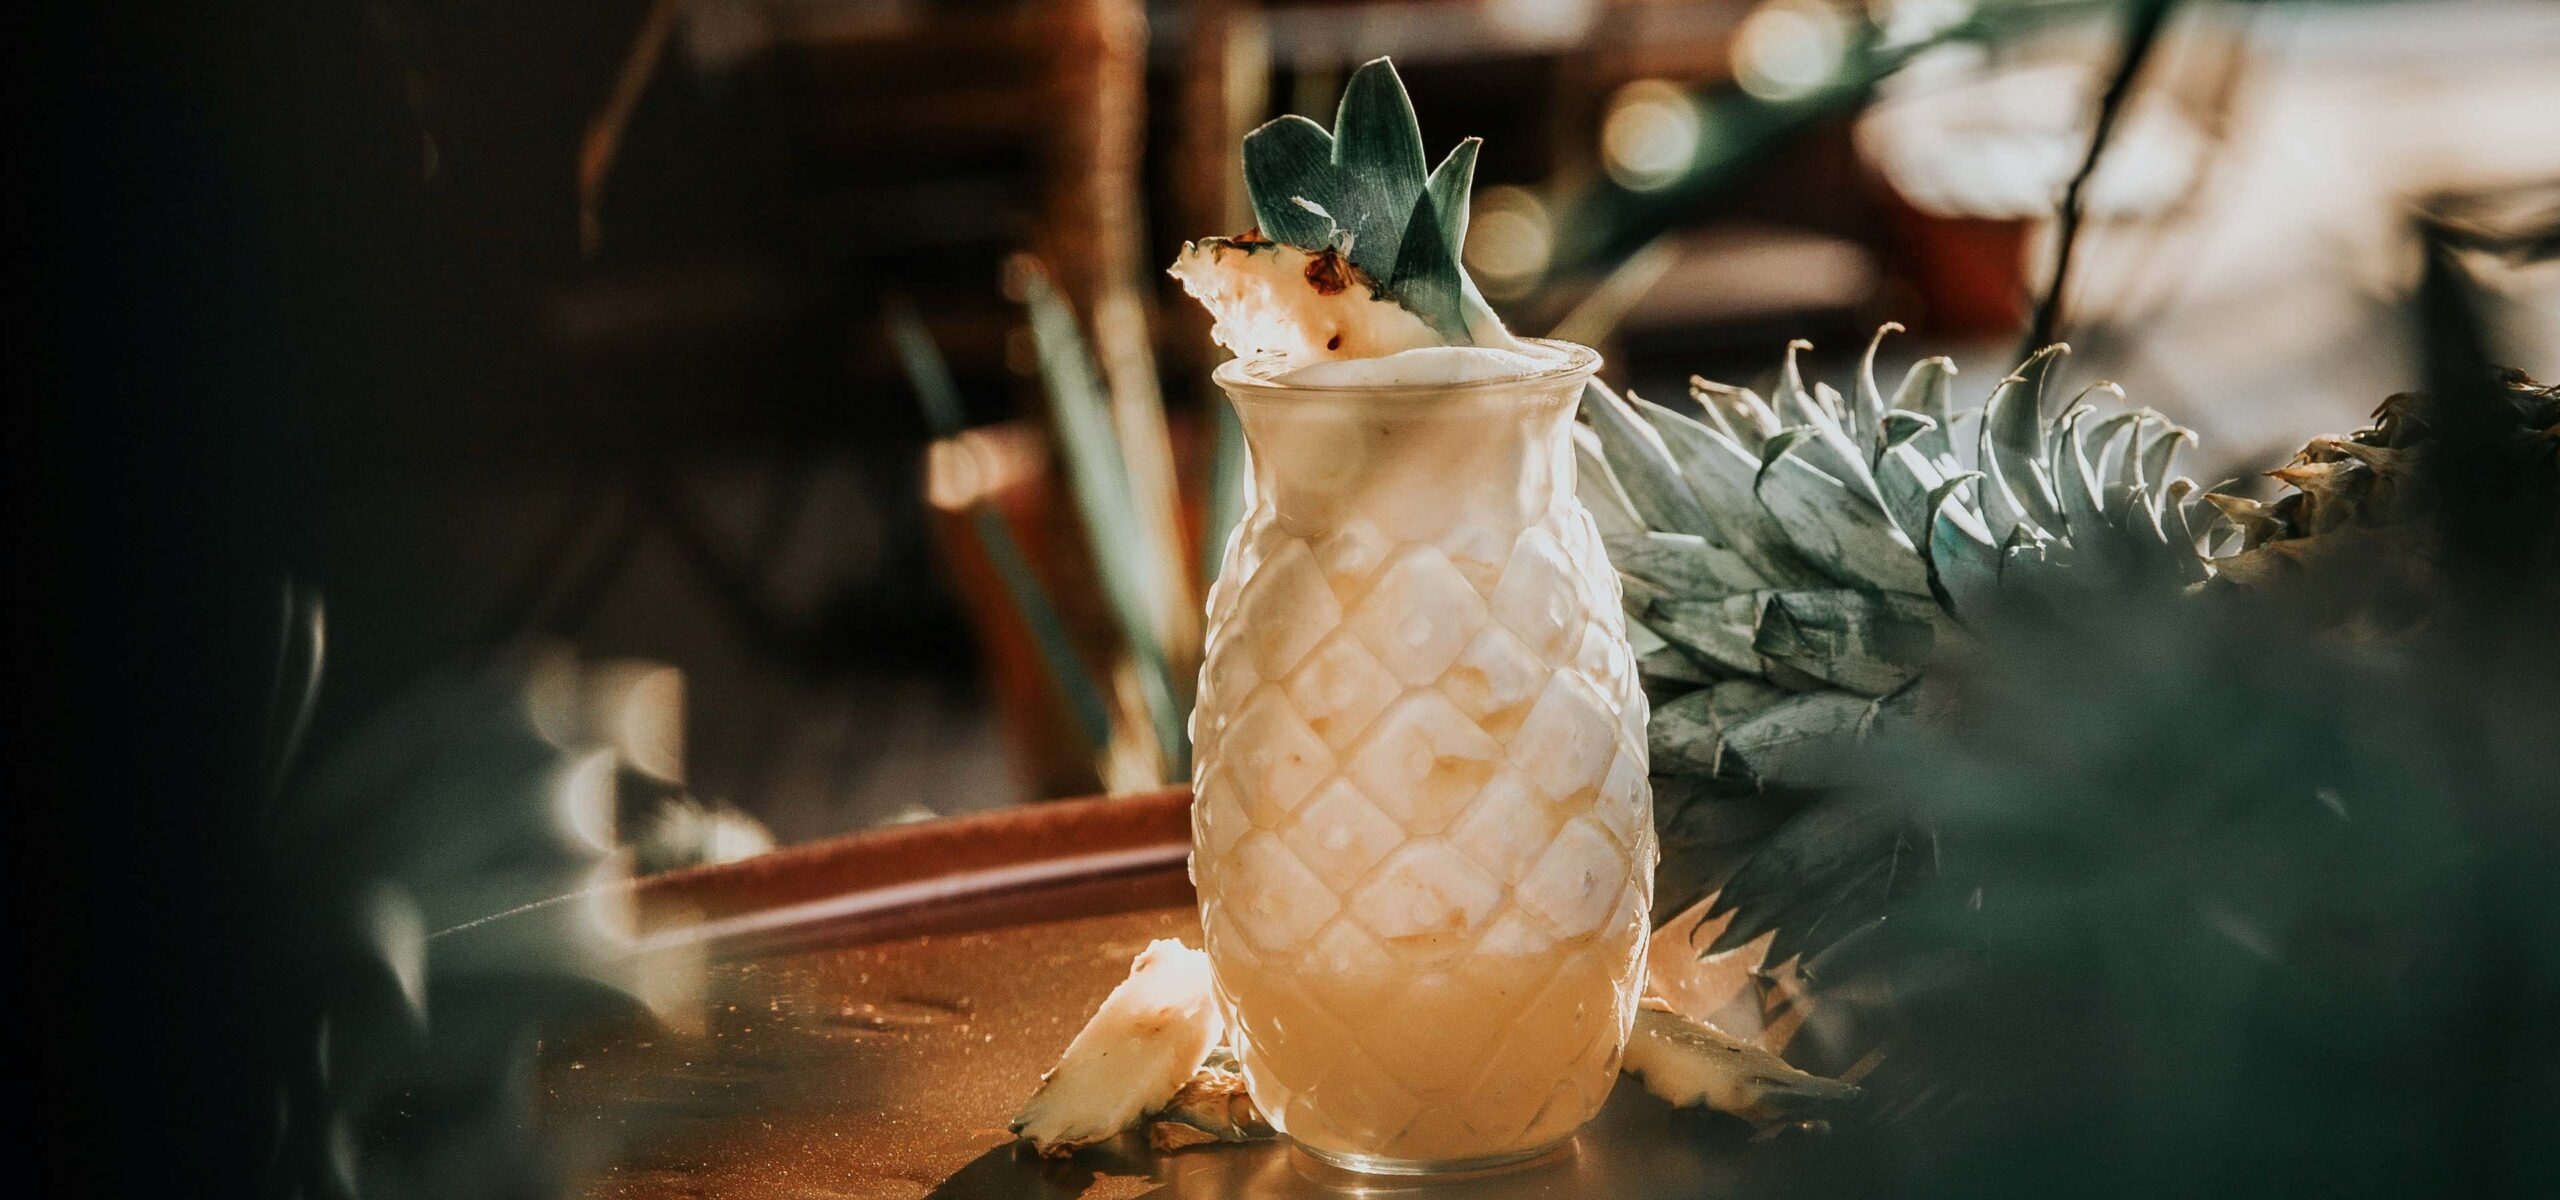 Cocktail in a pineapple shaped glass on a bar top.